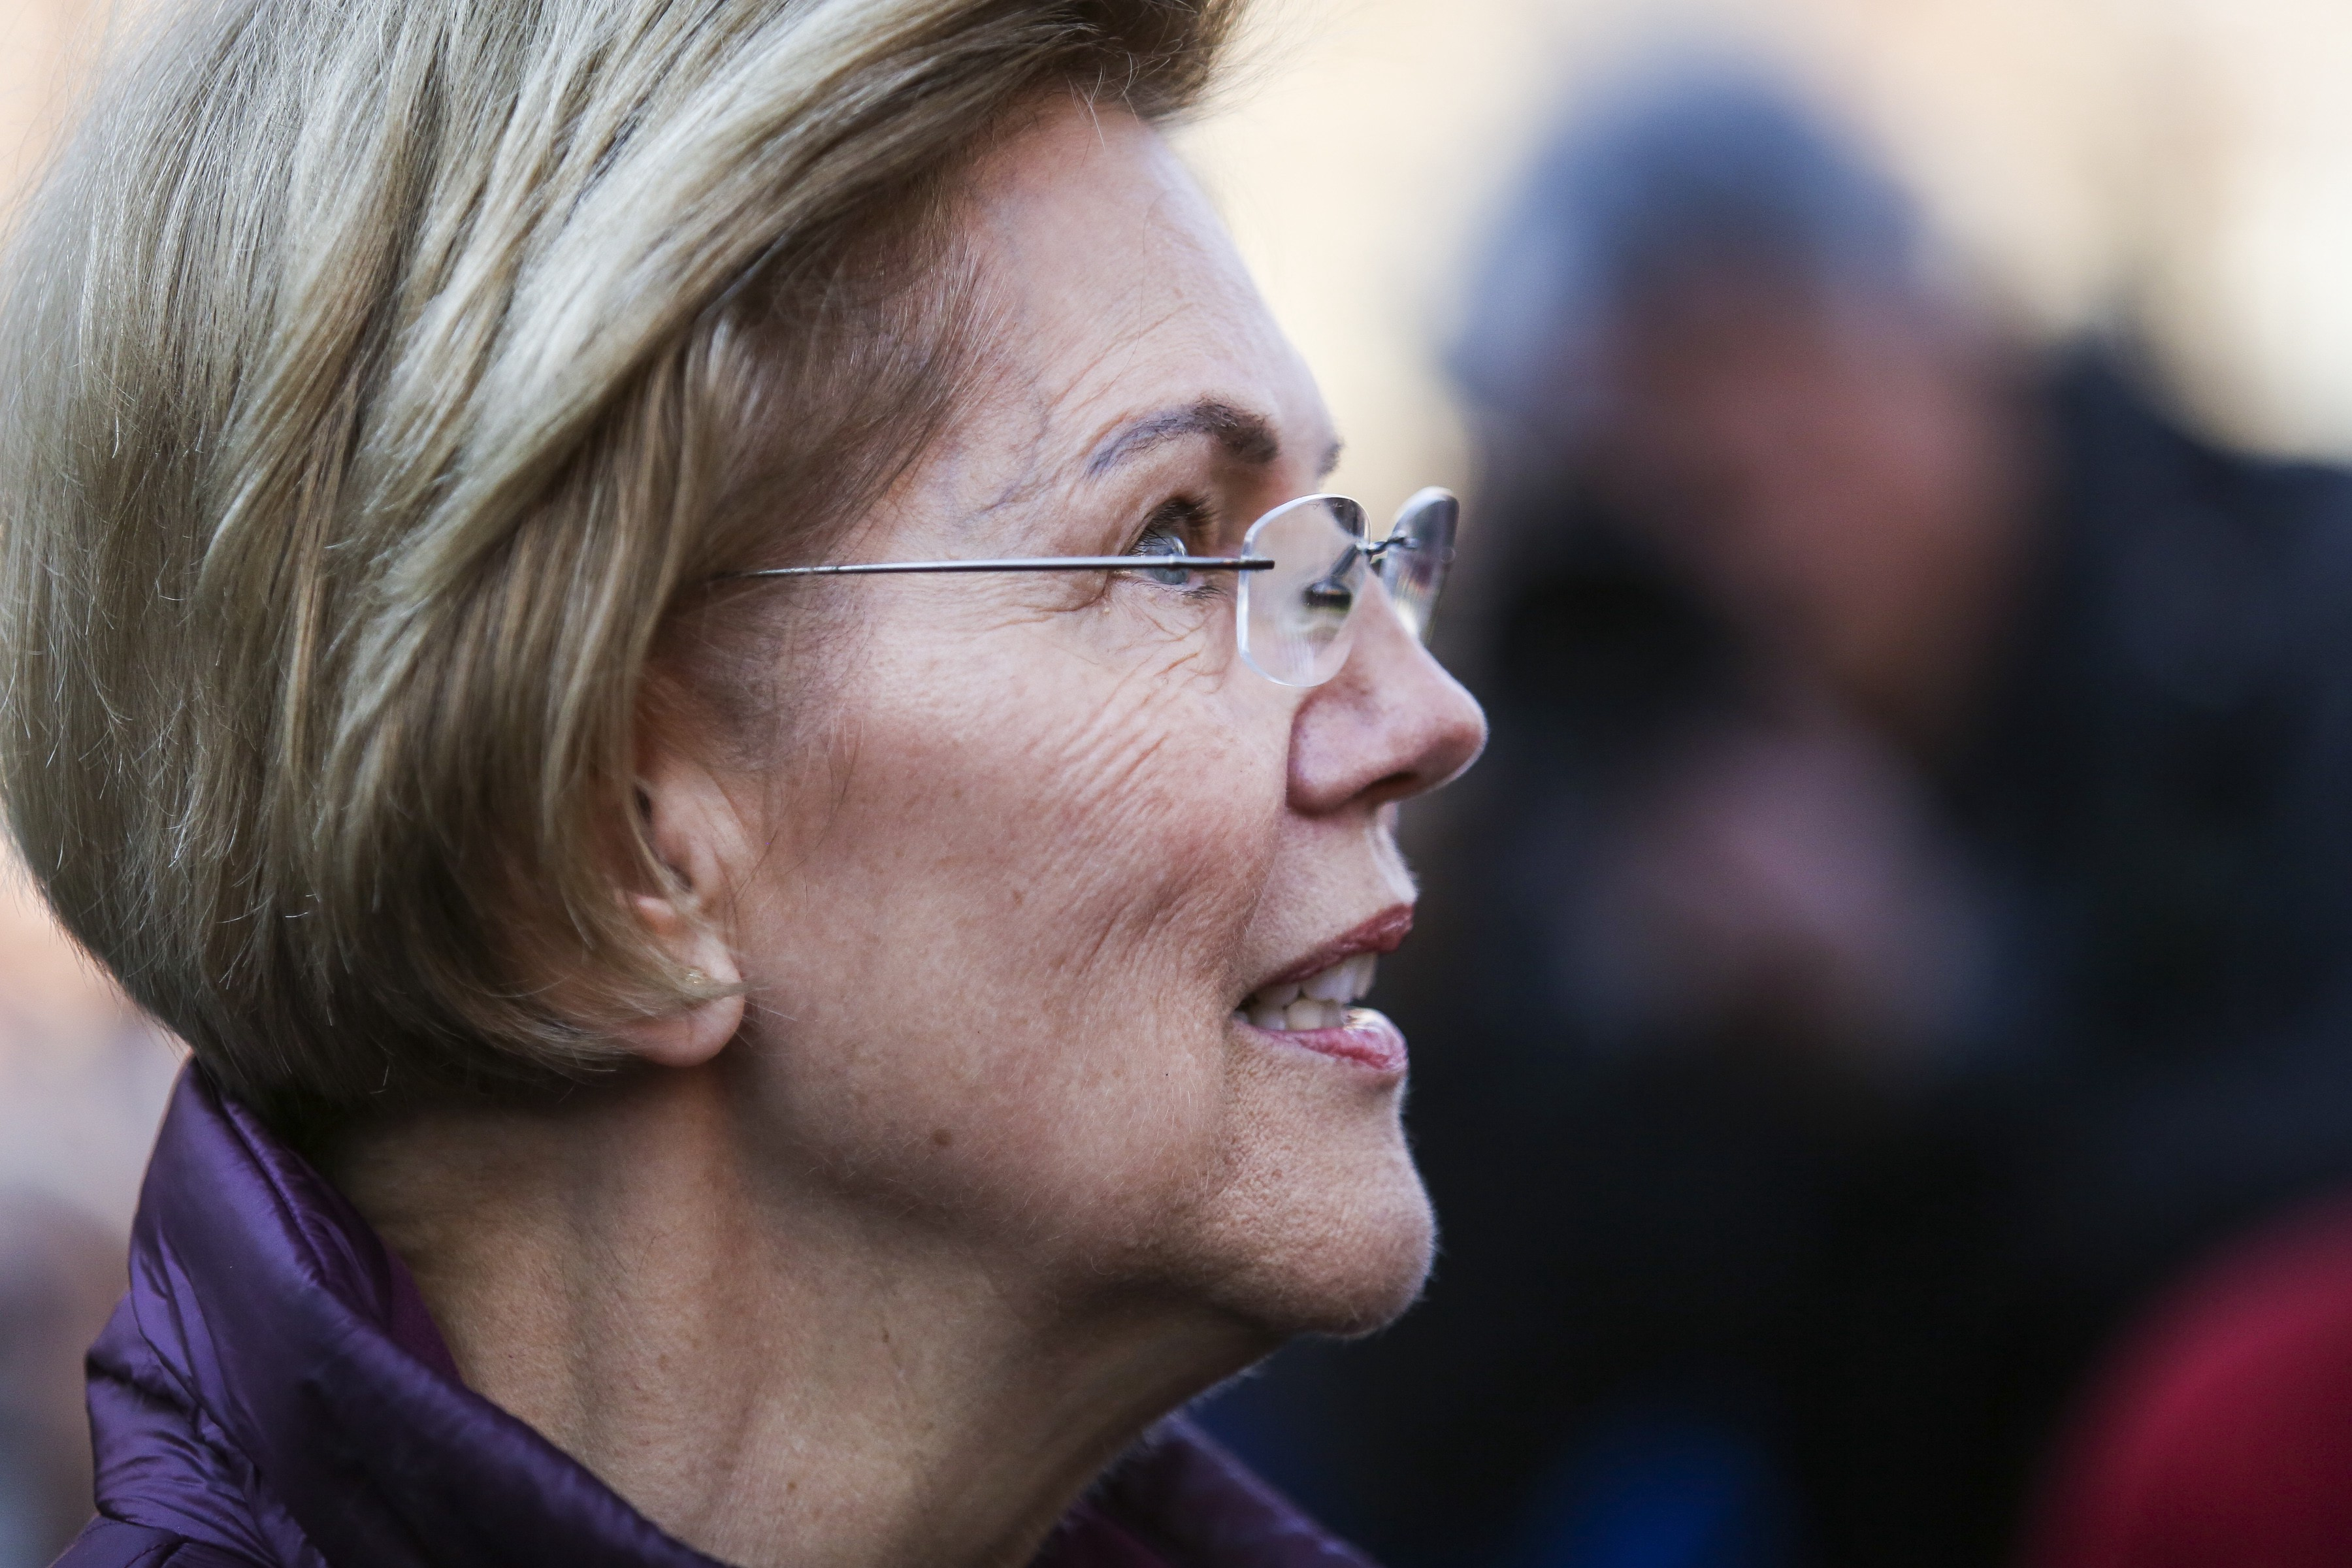 Elizabeth Warren addresses the media after dropping out of the Democratic presidential race in Cambridge, MA on March 5, 2020